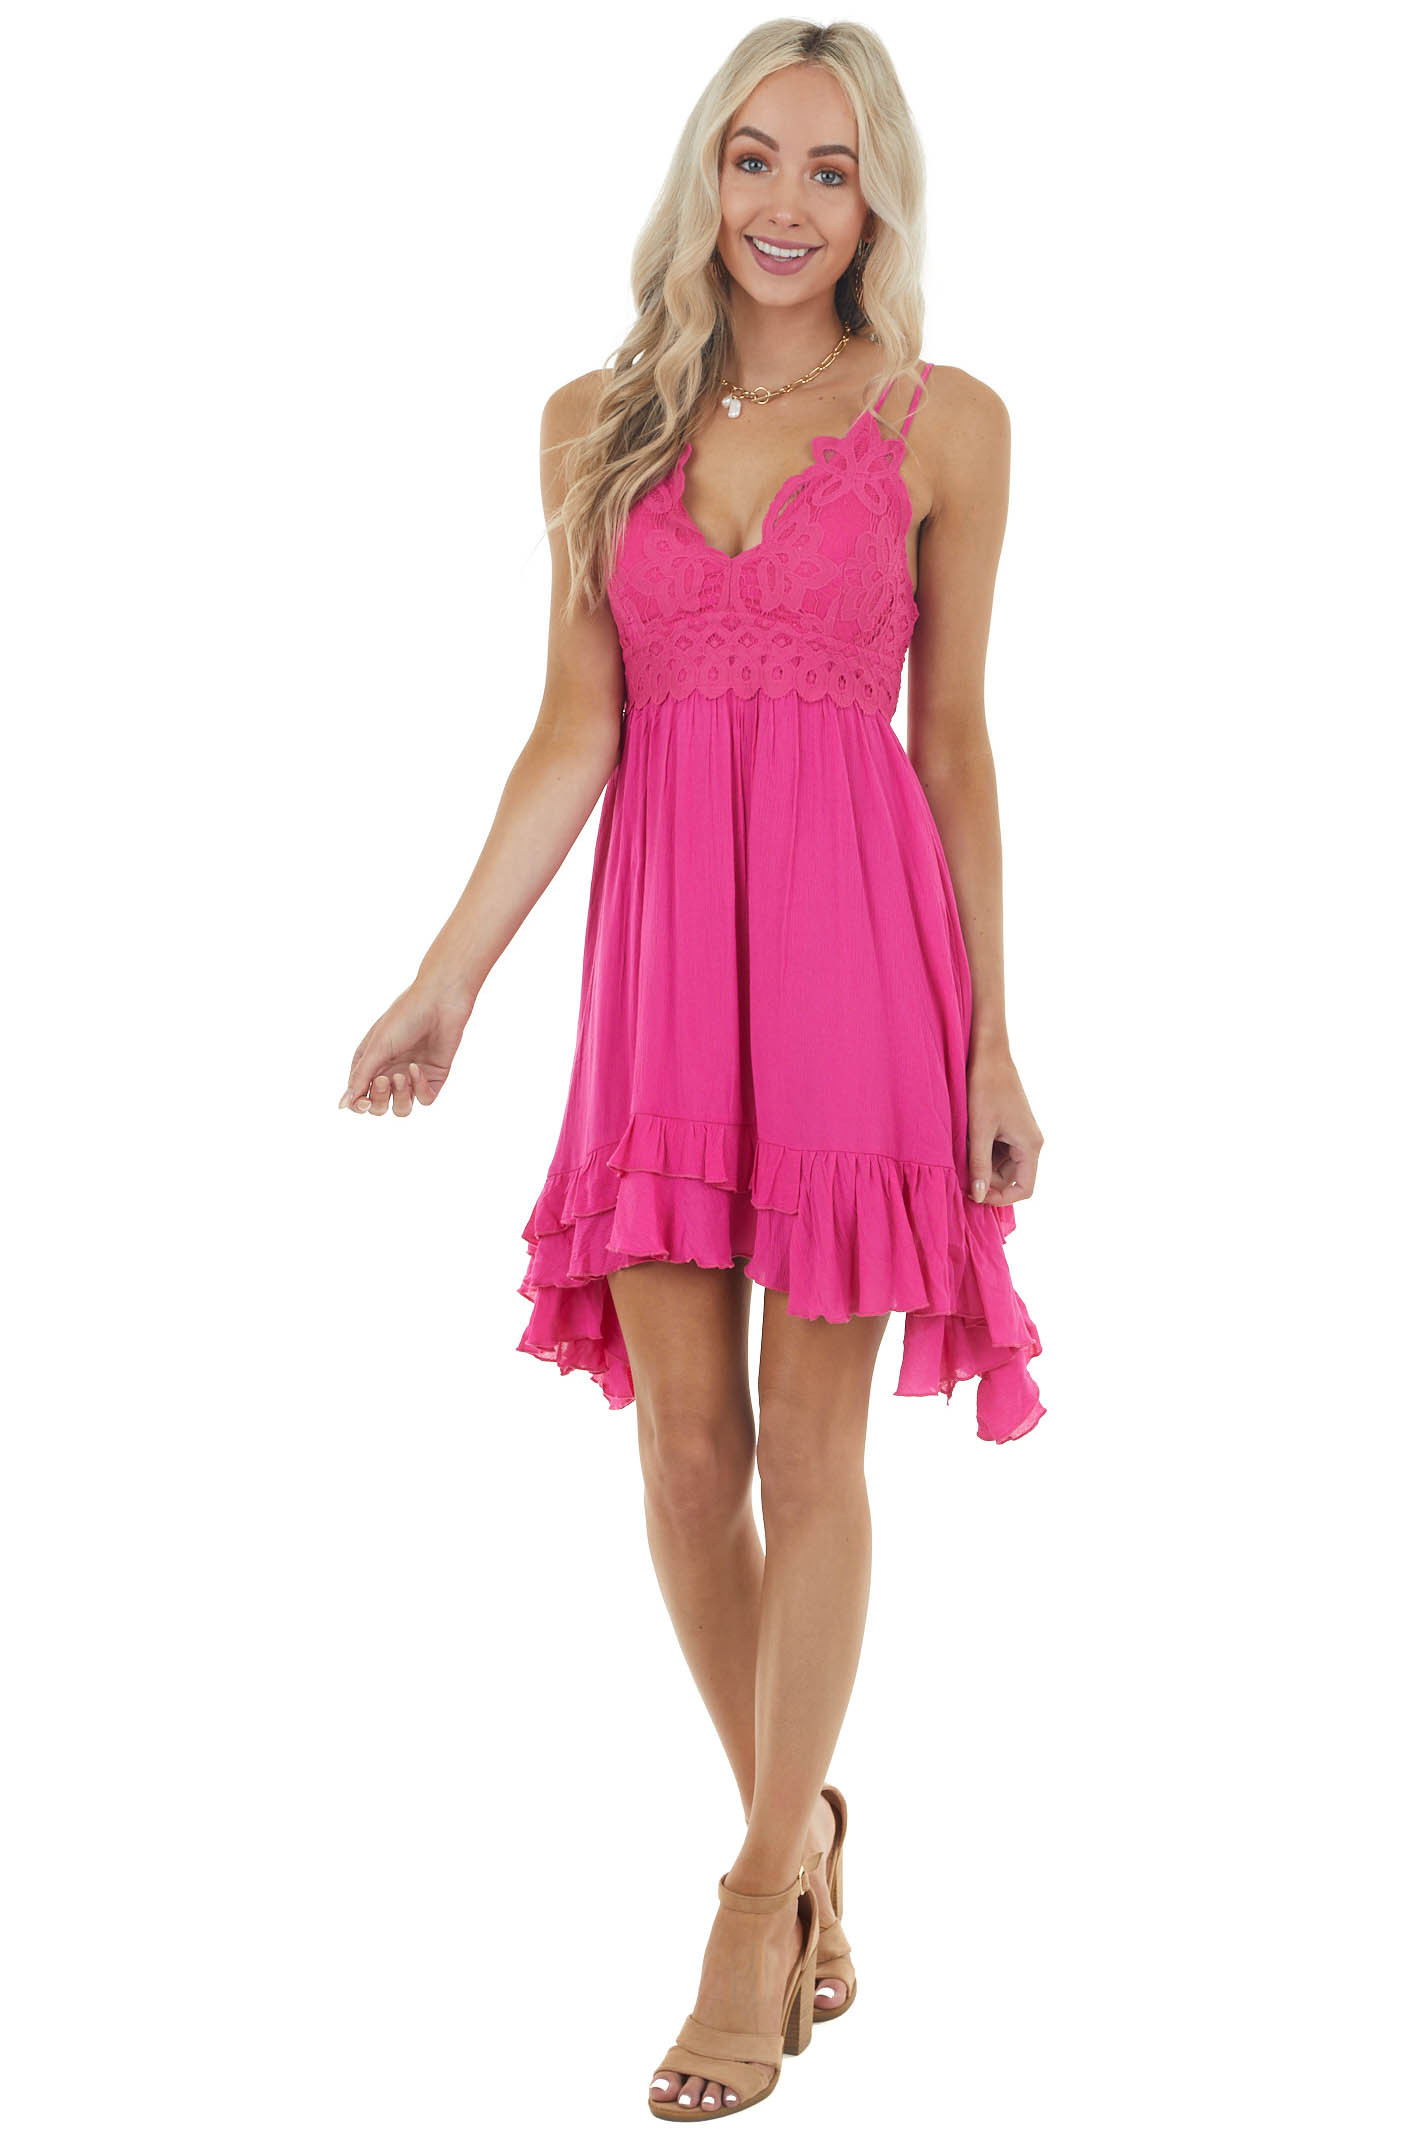 Fuchsia Sleeveless Dress with Crochet Lace Details